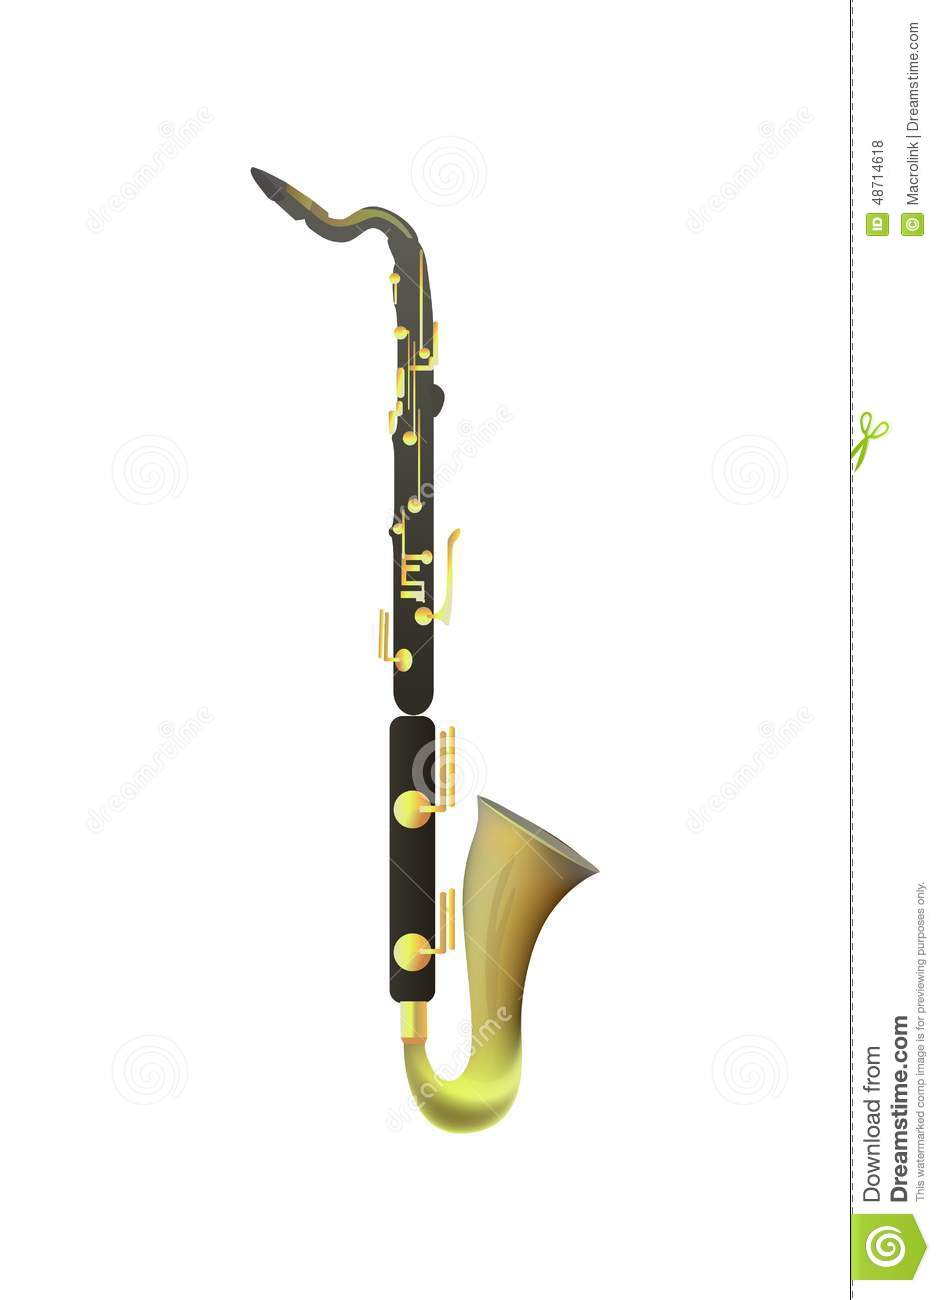 how to draw a bass clarinet